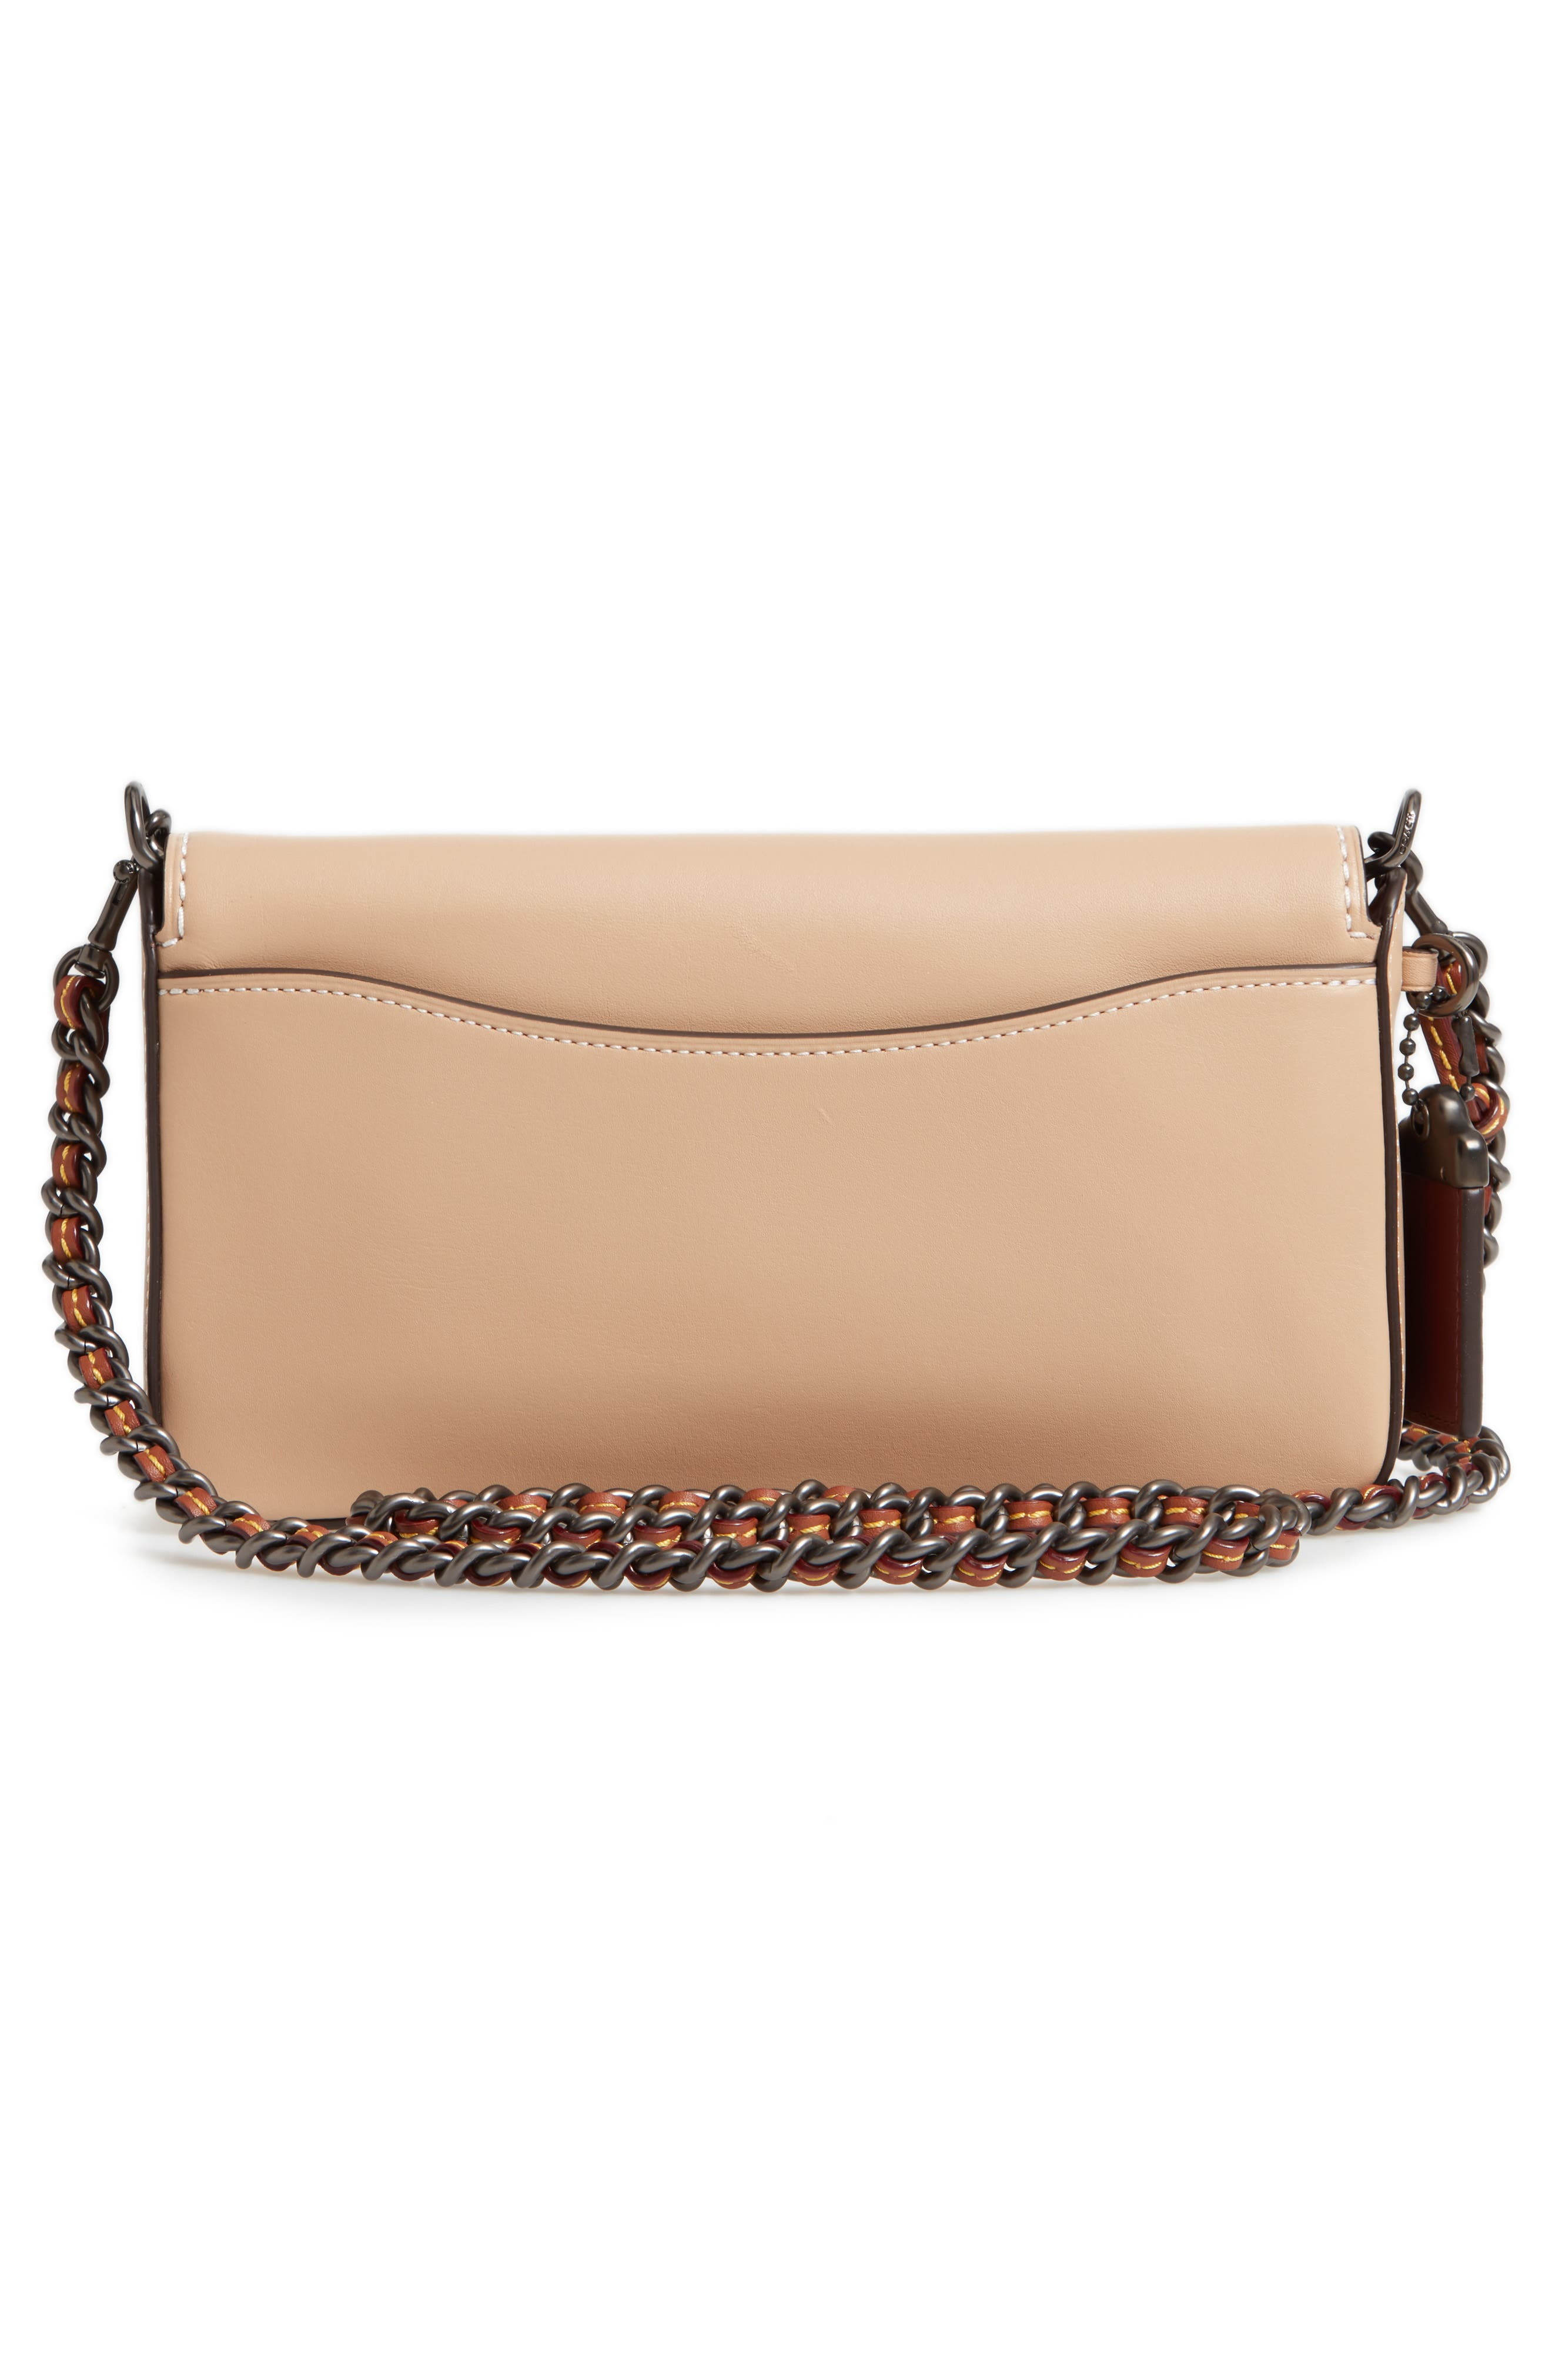 Dinky Leather Crossbody Sequin Bag,                             Alternate thumbnail 3, color,                             BEECHWOOD